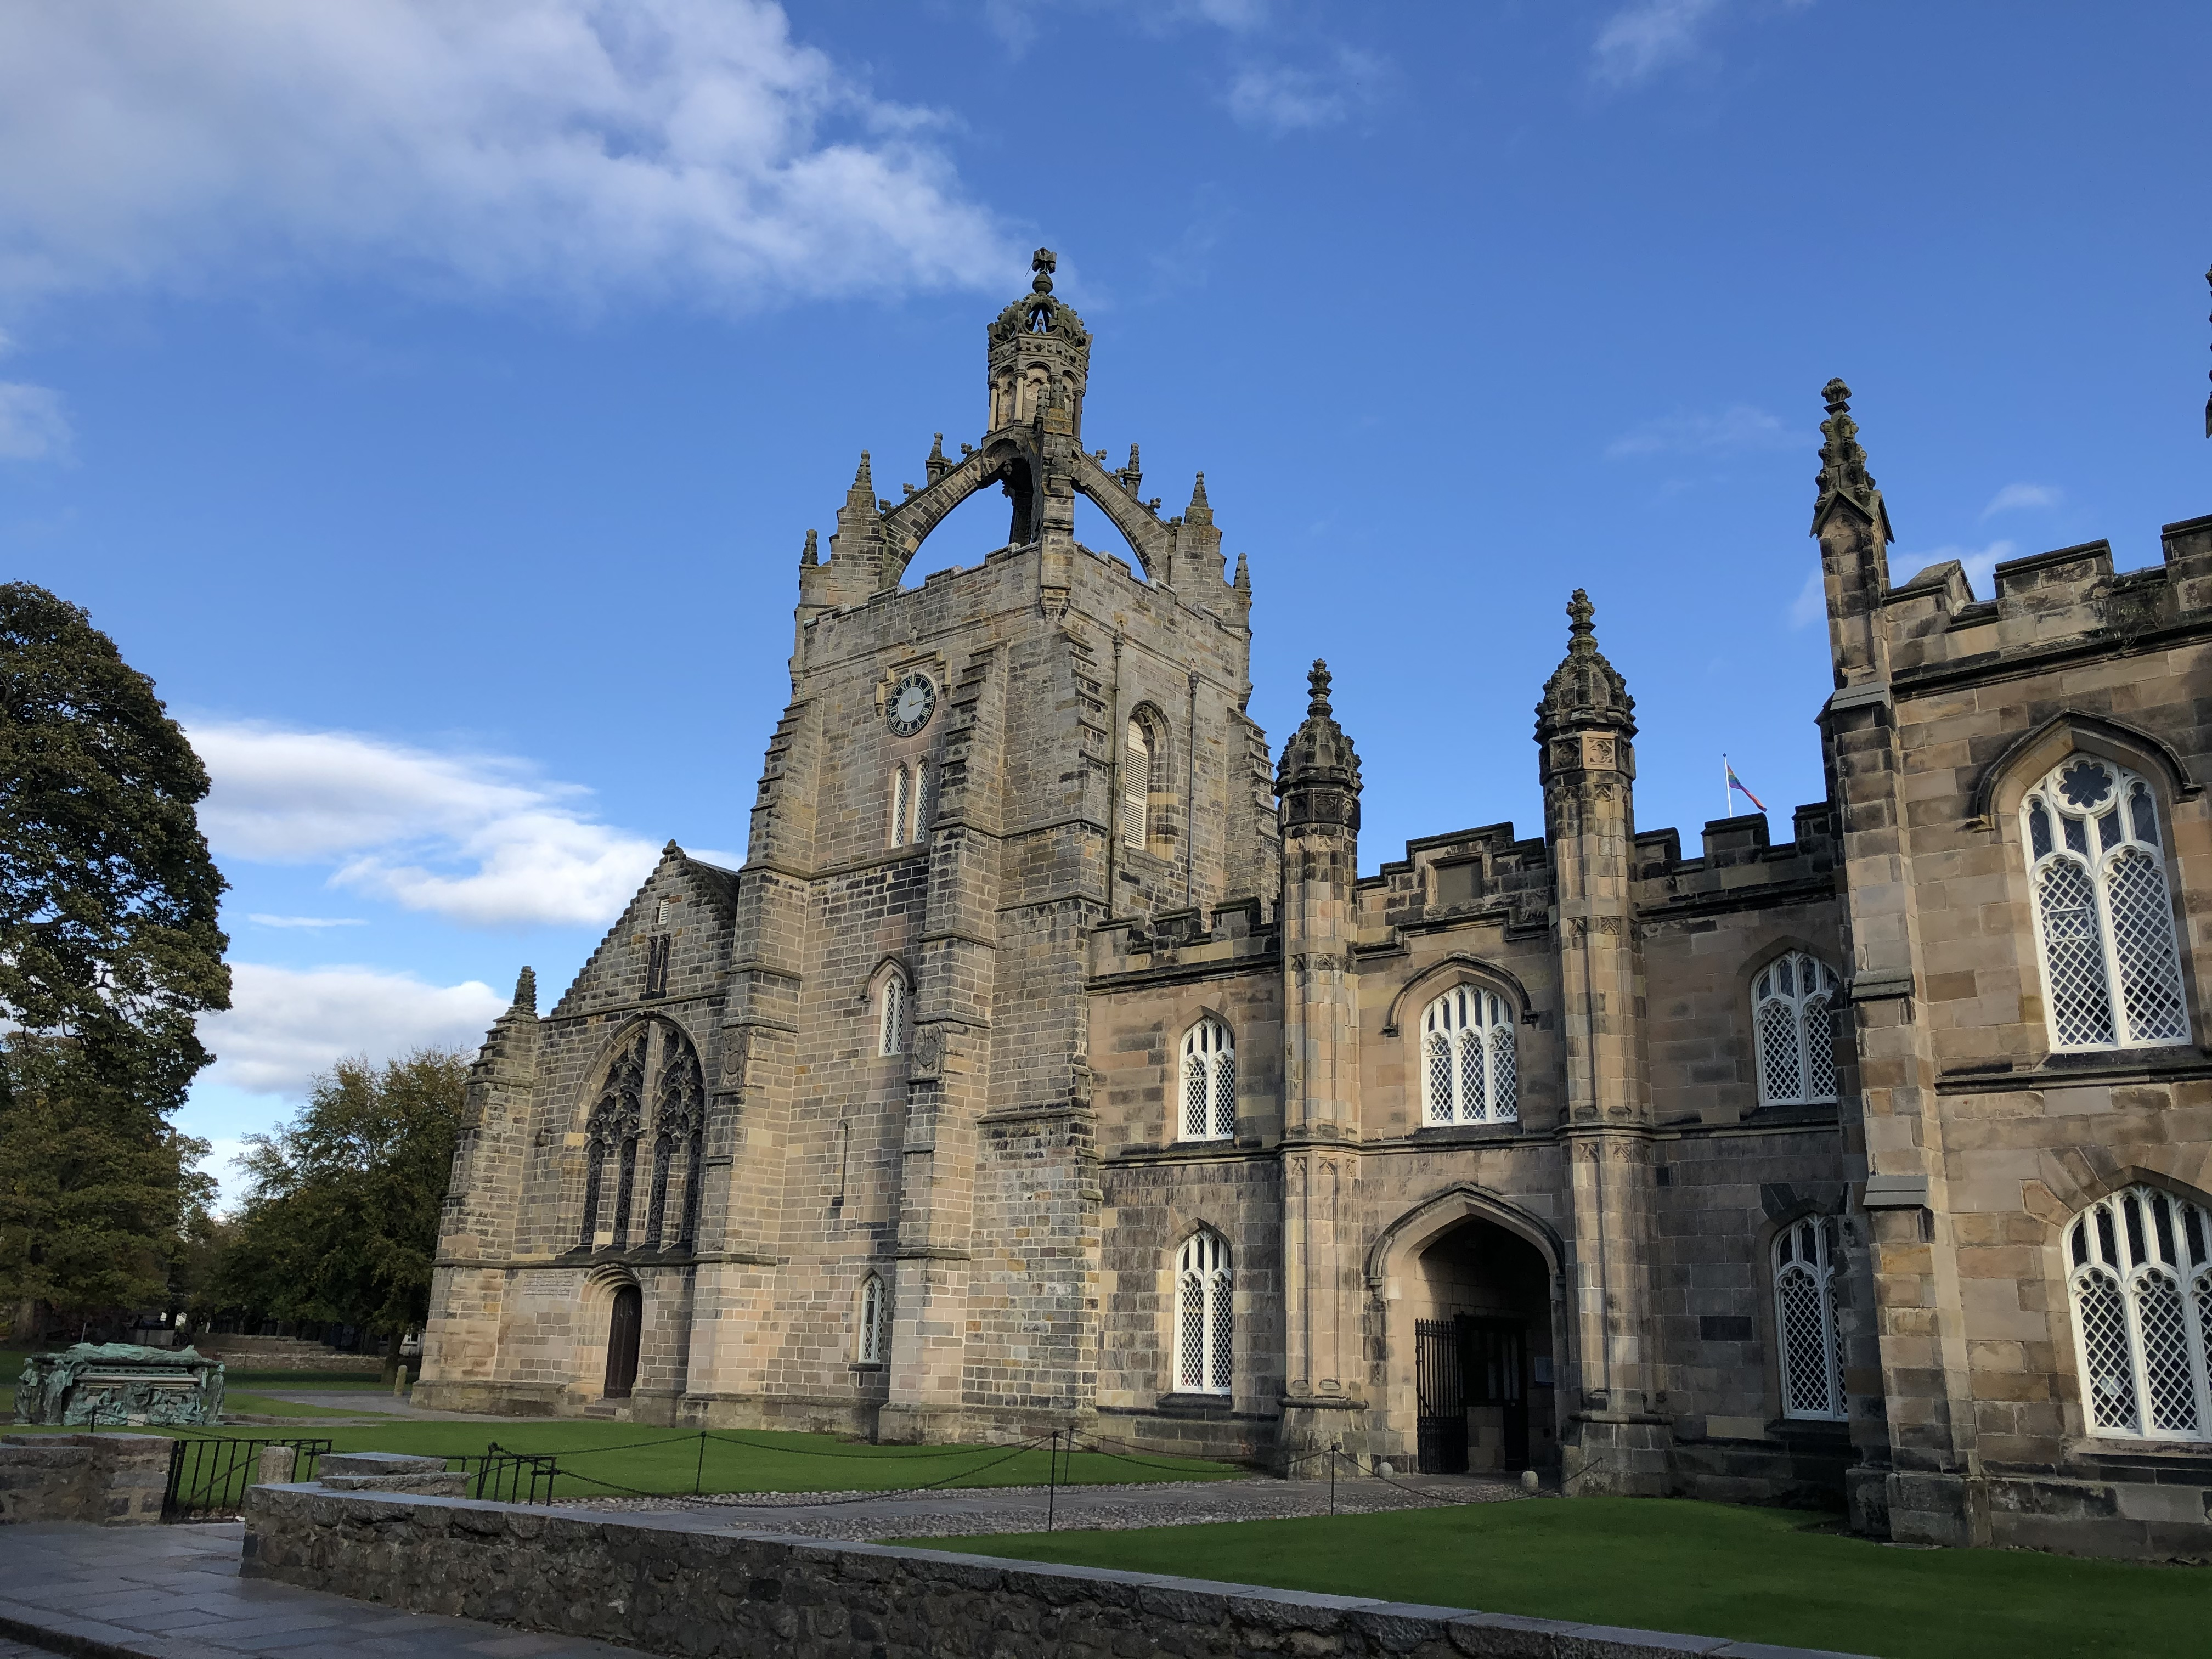 Kings College building at the University of Aberdeen